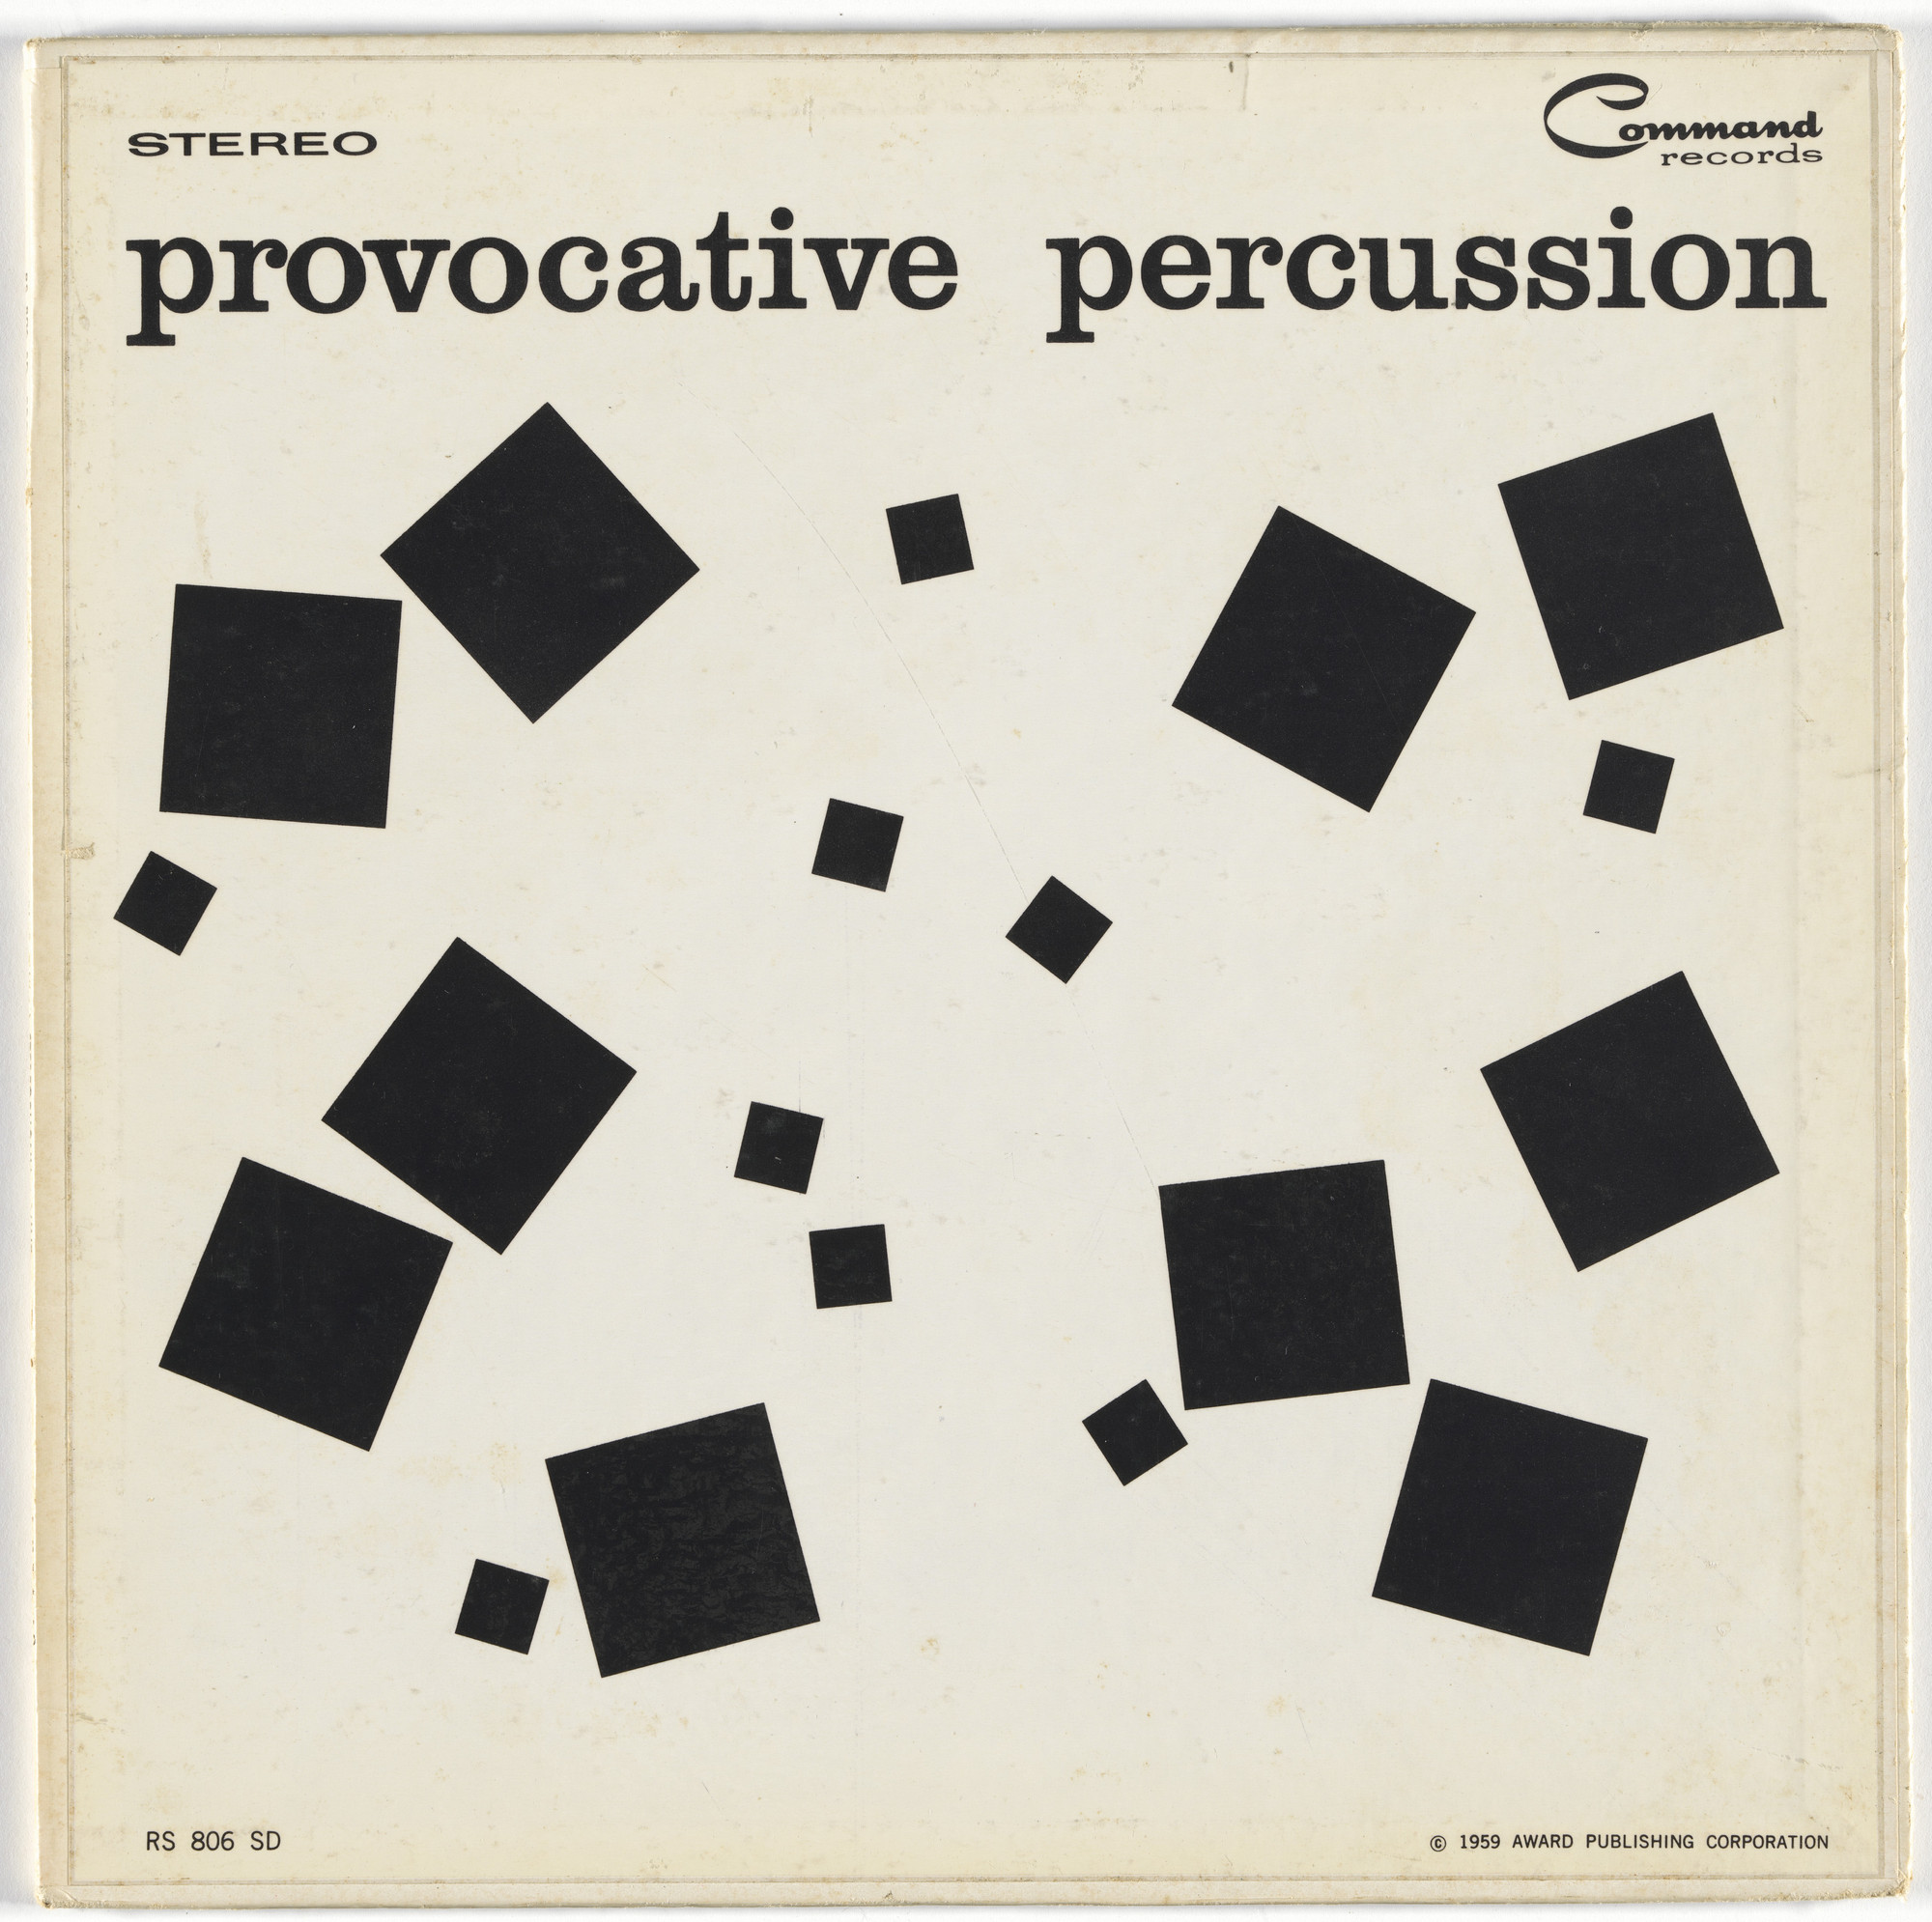 Josef Albers, Charles E. Murphy, Command Records. Album cover for Enoch Light and the Light Brigade, Provocative Percussion. 1959